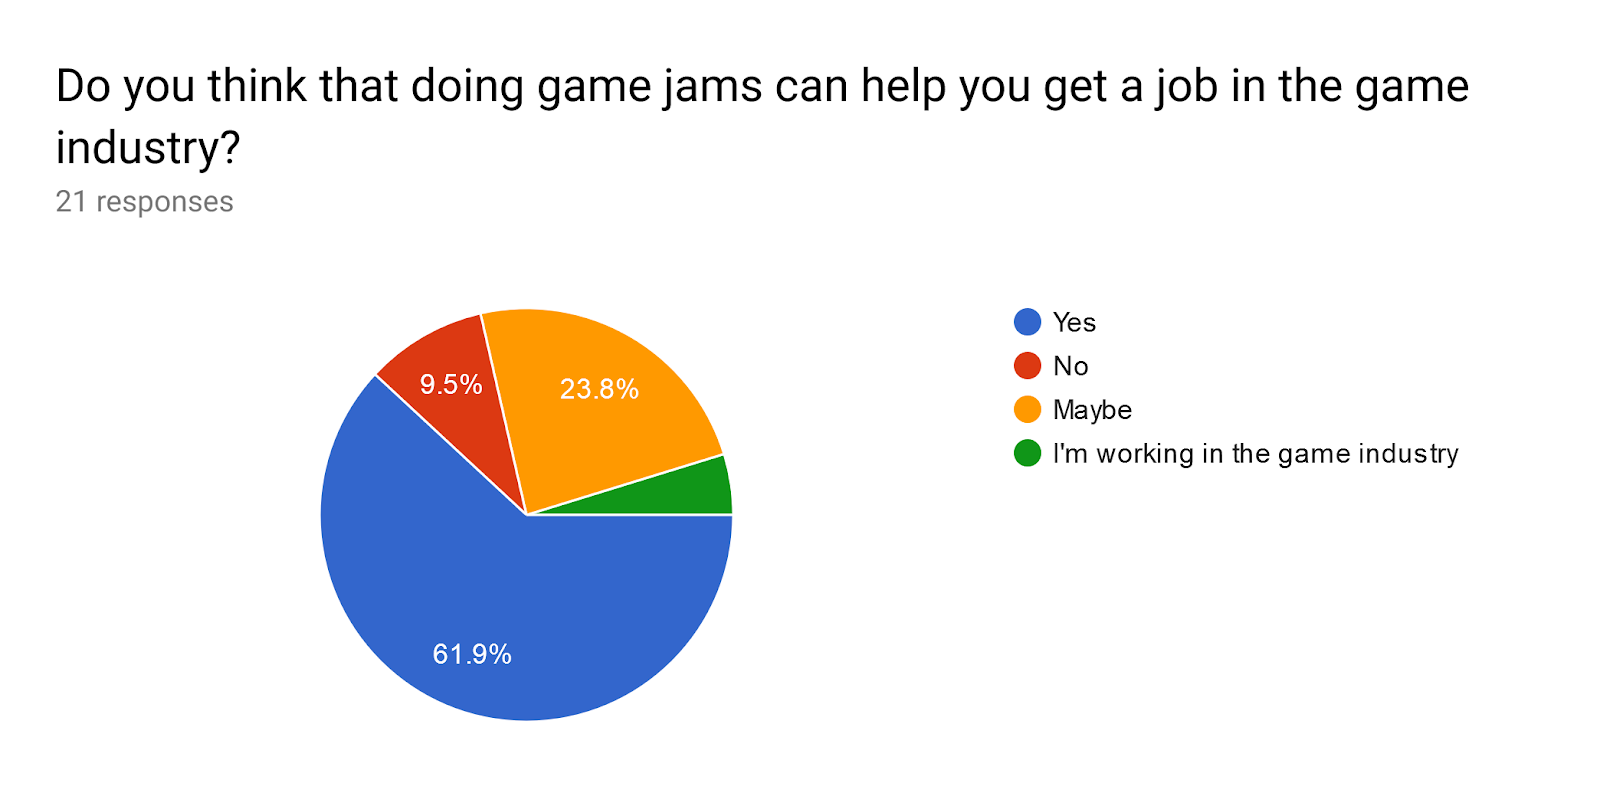 Forms response chart. Question title: Do you think that doing game jams can help you get a job in the game industry?. Number of responses: 21 responses.